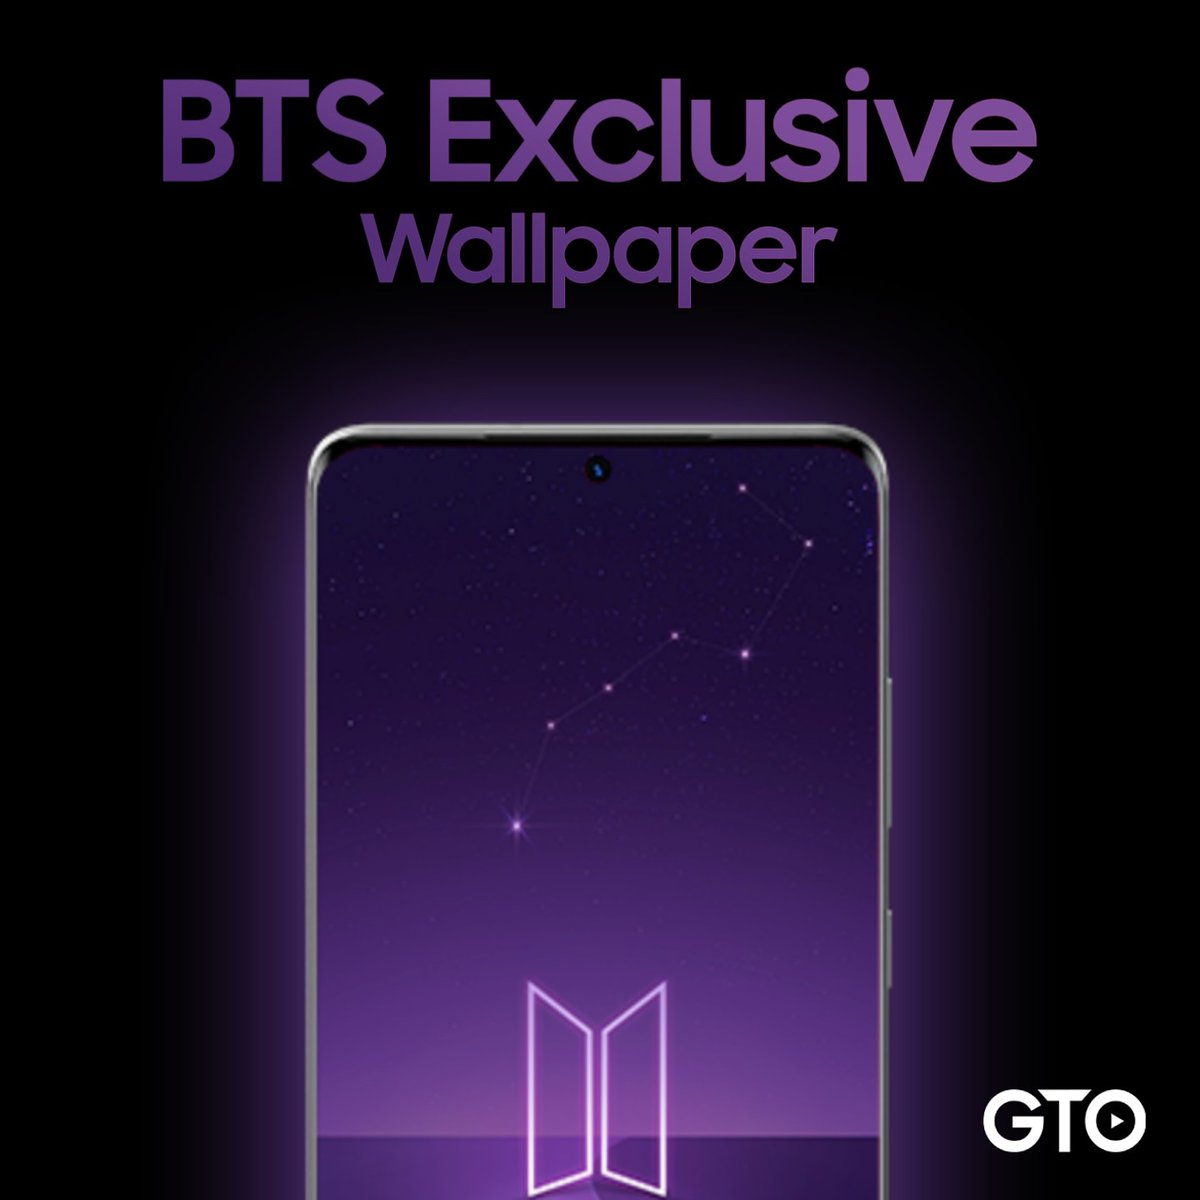 Gto On Twitter Bts Samsung Exclusive Wallpaper Download On Gto Website Https T Co Ii35l7ywaf Bts Btsarmy Androidwallpaper Wallpaper Android Ios Https T Co Bthelsd8w4